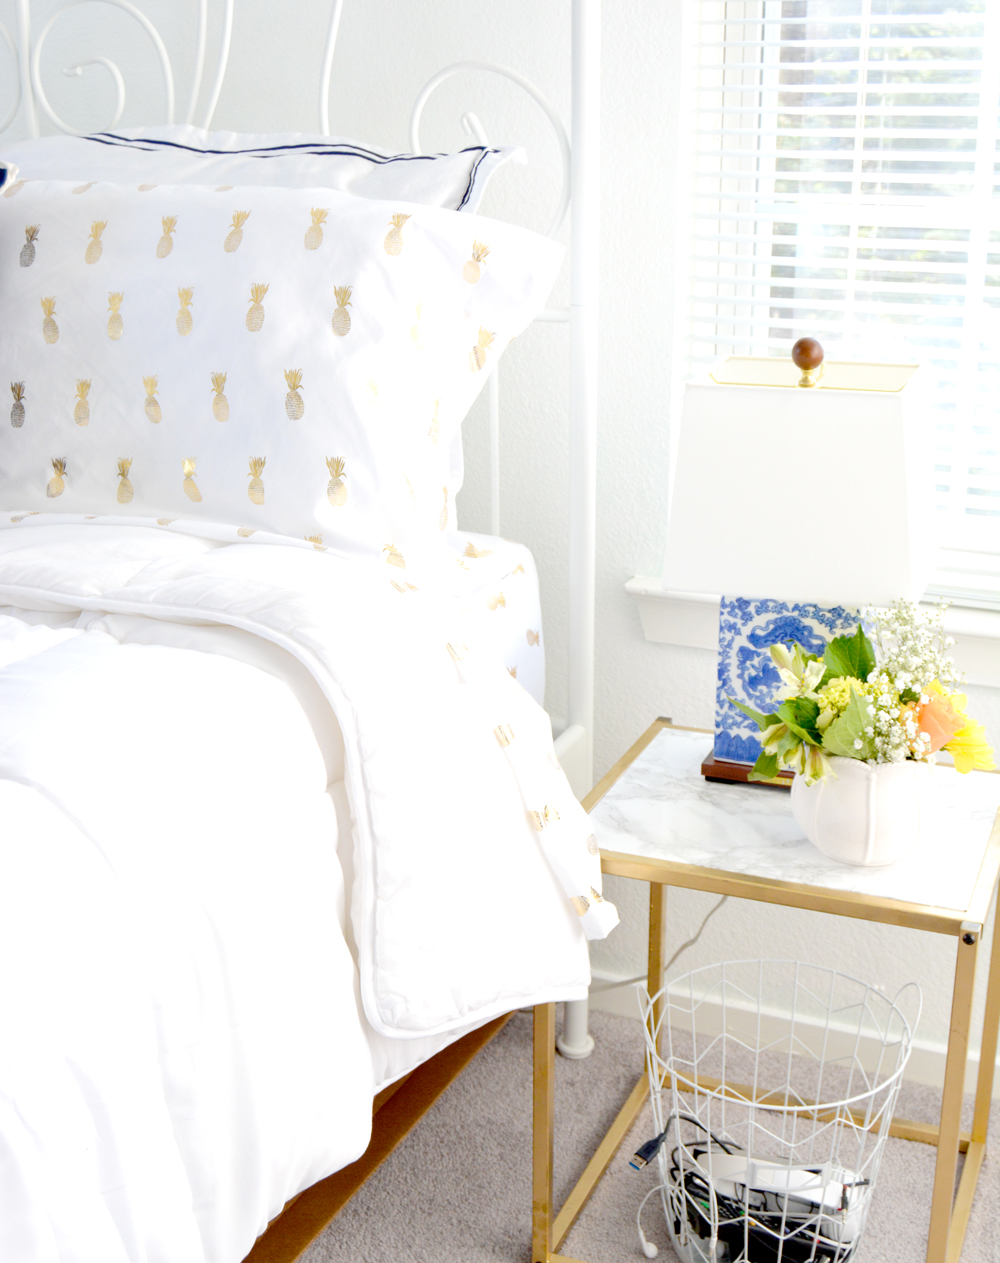 Five Chic First Apartment DIY Projects to Try